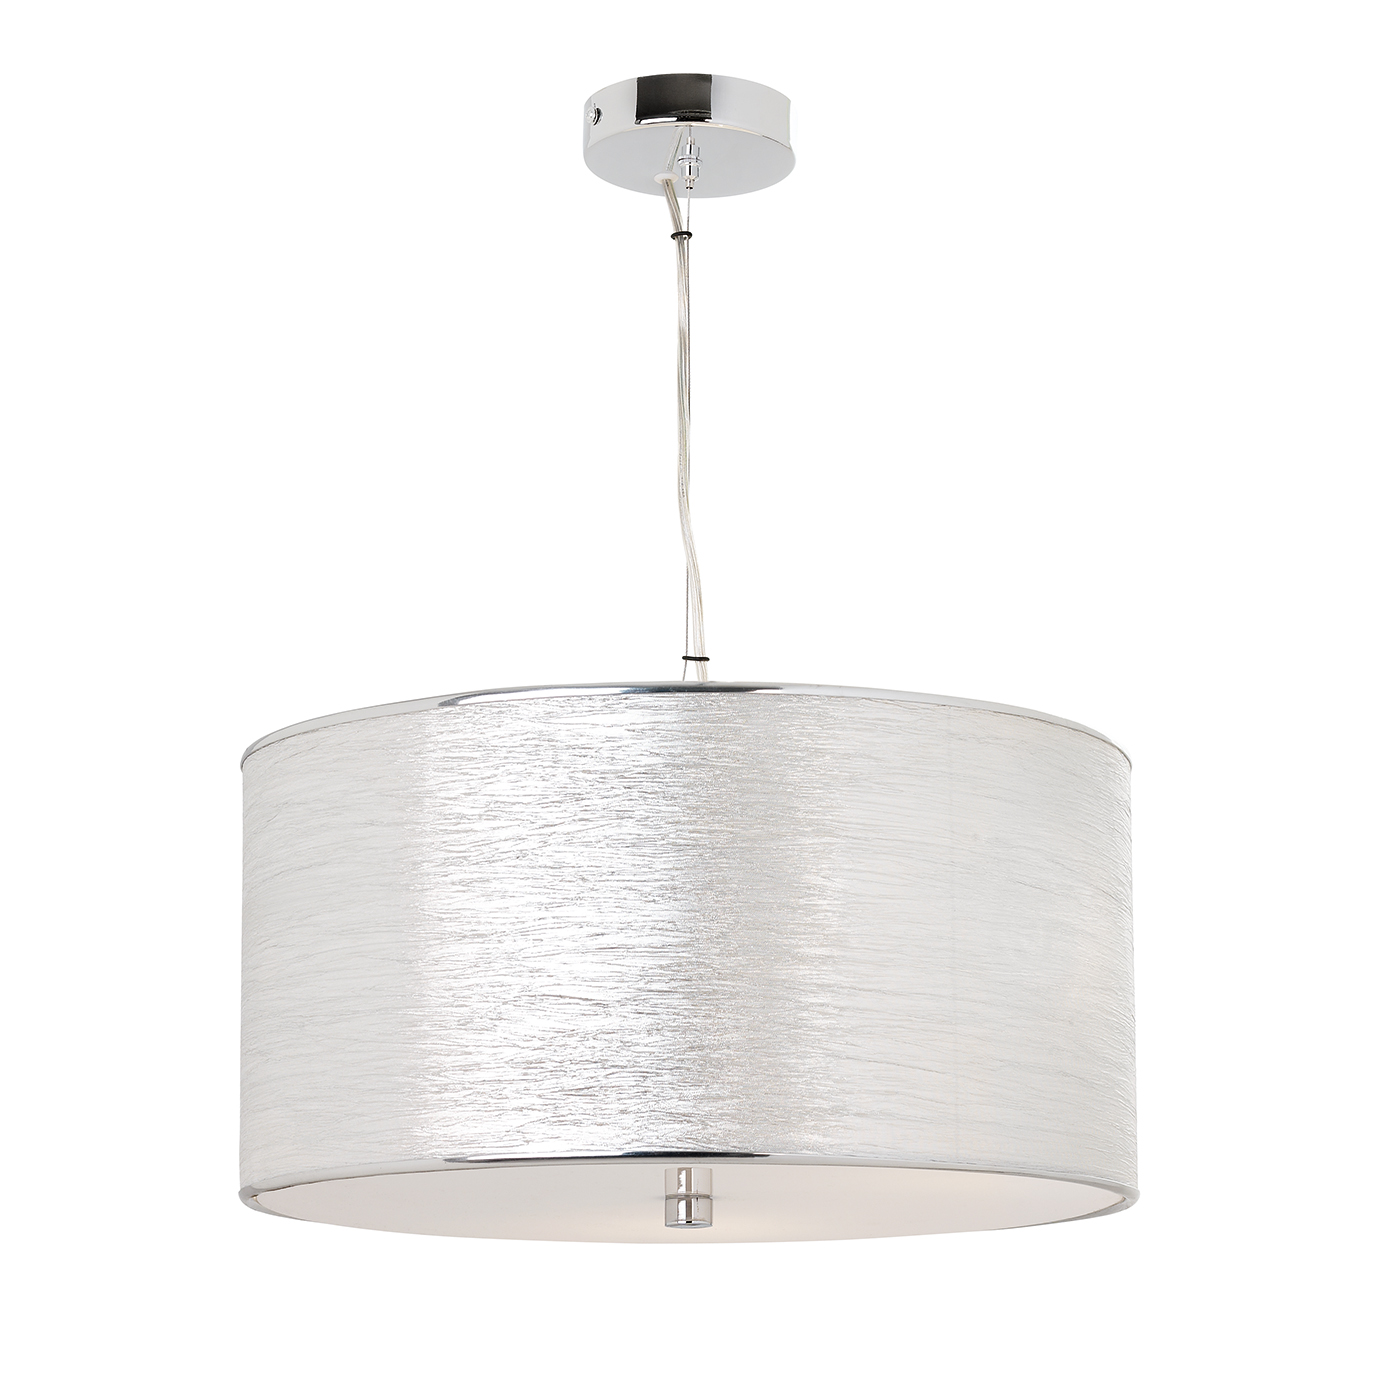 Endon Rebolo pendant 3x 60W Silver lame effect fabric & frosted acrylic